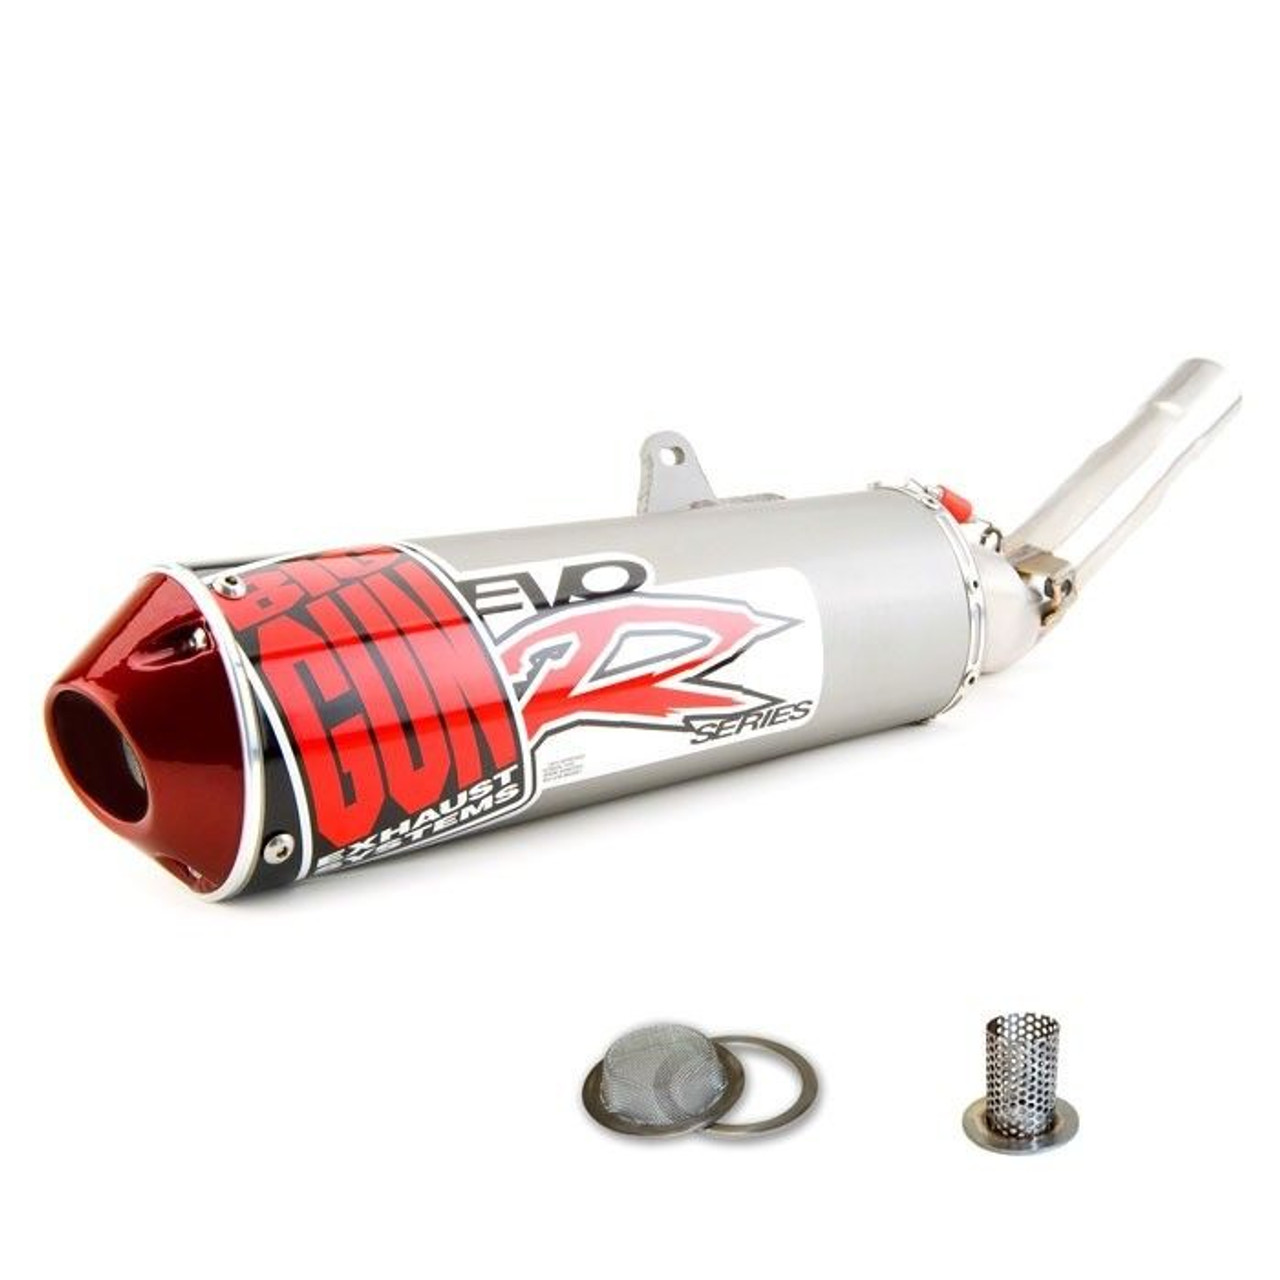 NEW BIG GUN ATV ECO Slip-On EXHAUST MUFFLER 07-2223